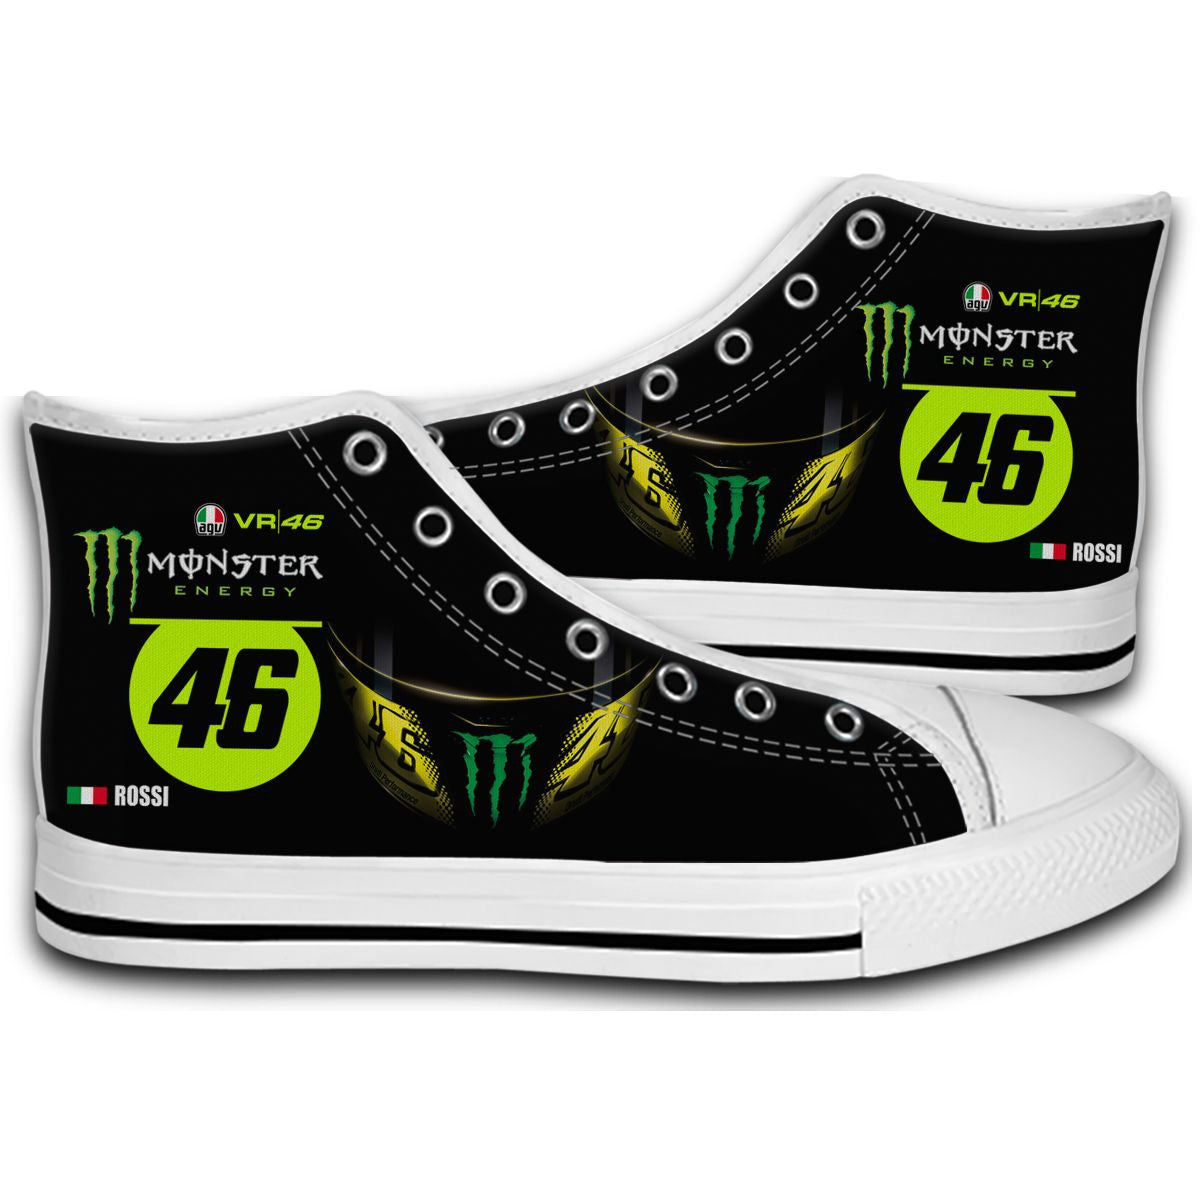 2016 Valentino Rossi Monster 46 Monza Rally Moto GP CANVAS STYLE SHOES FASHION SNEAKERS